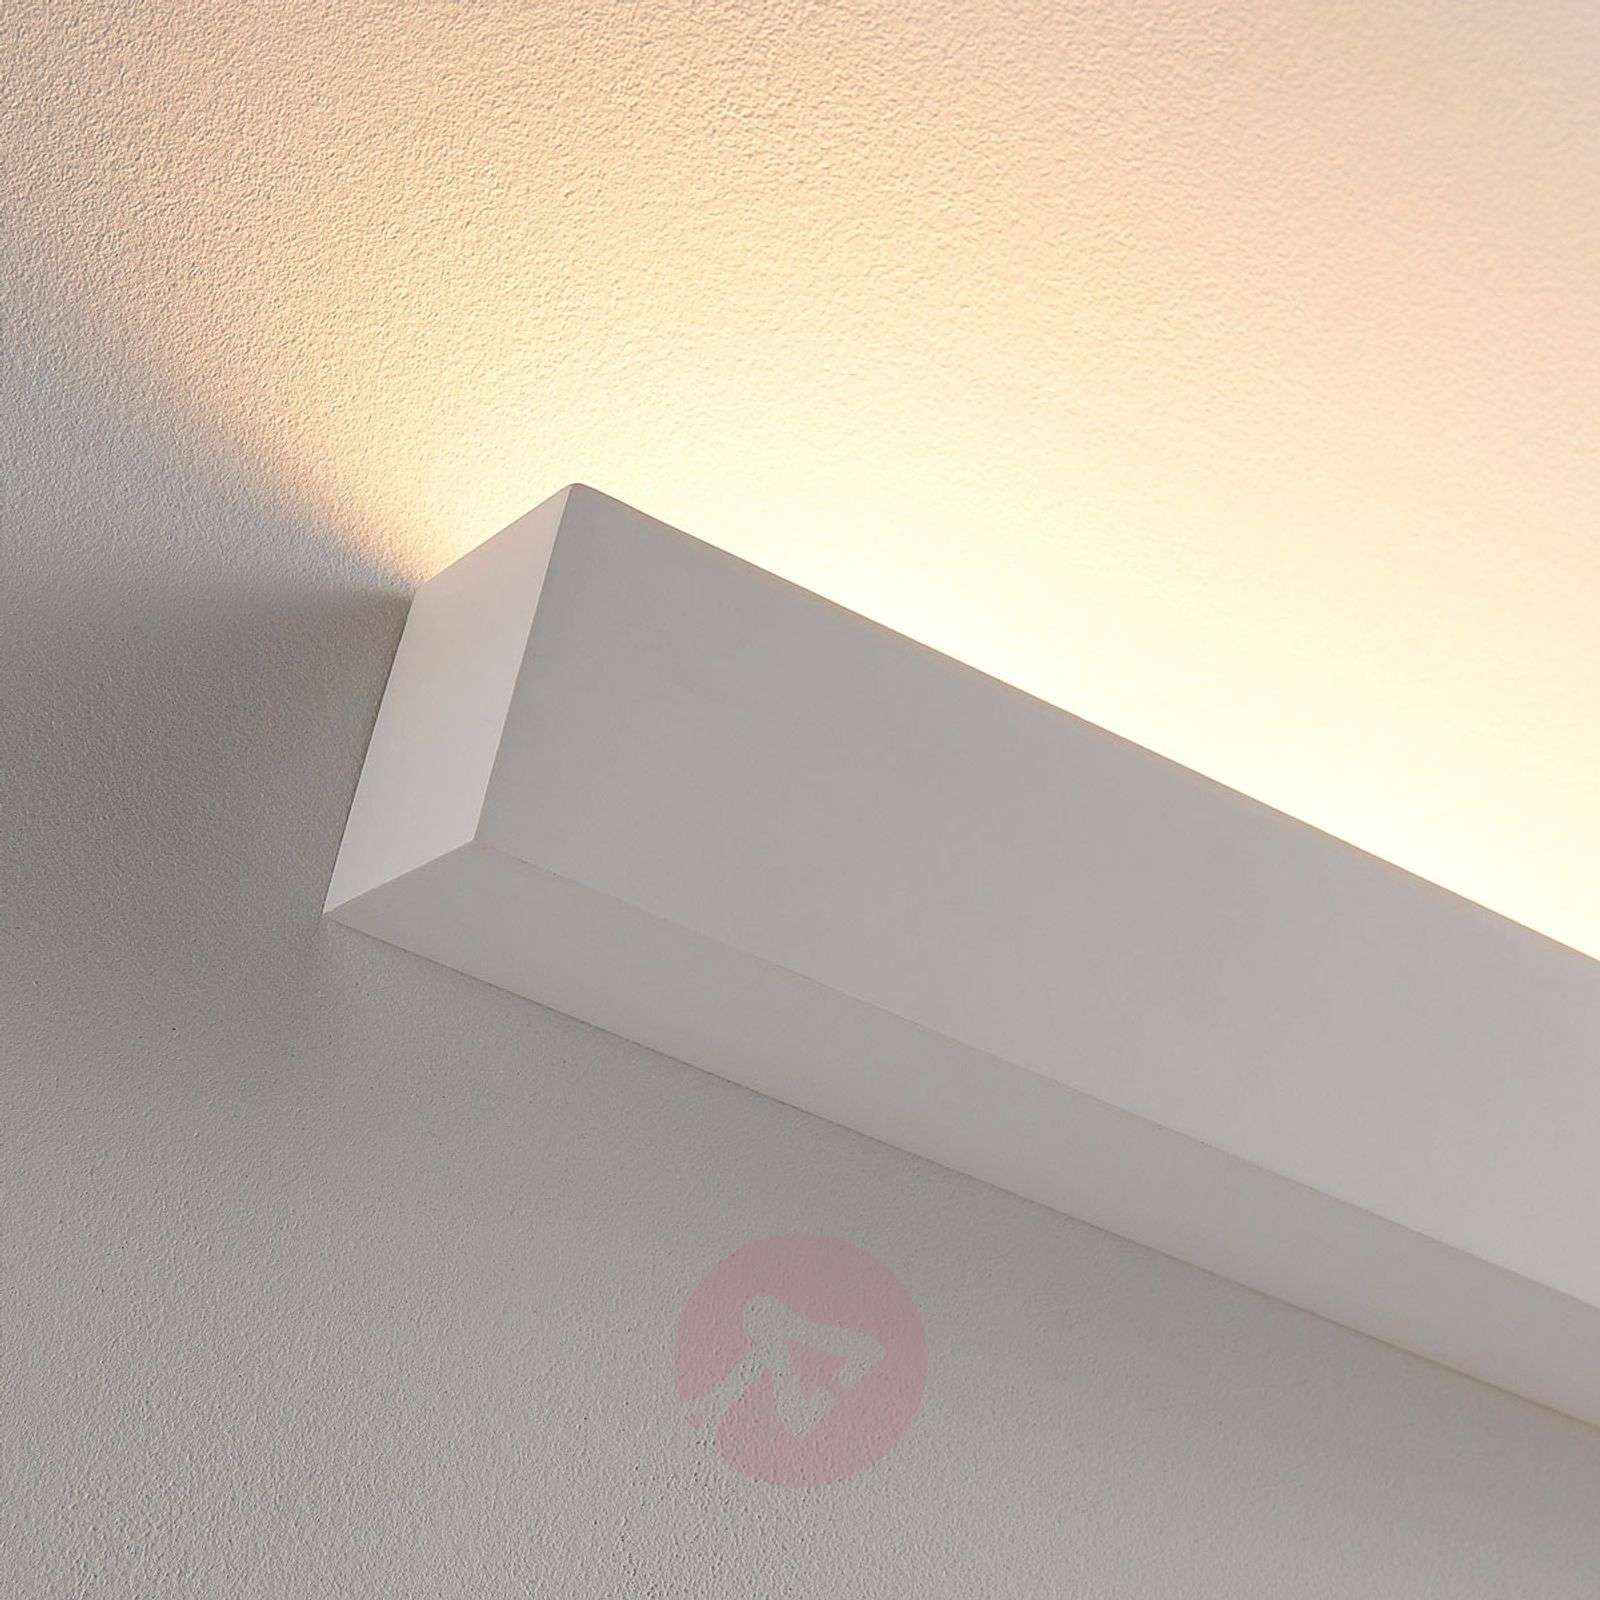 White LED plaster wall uplighter Santino, angular-9621335-02